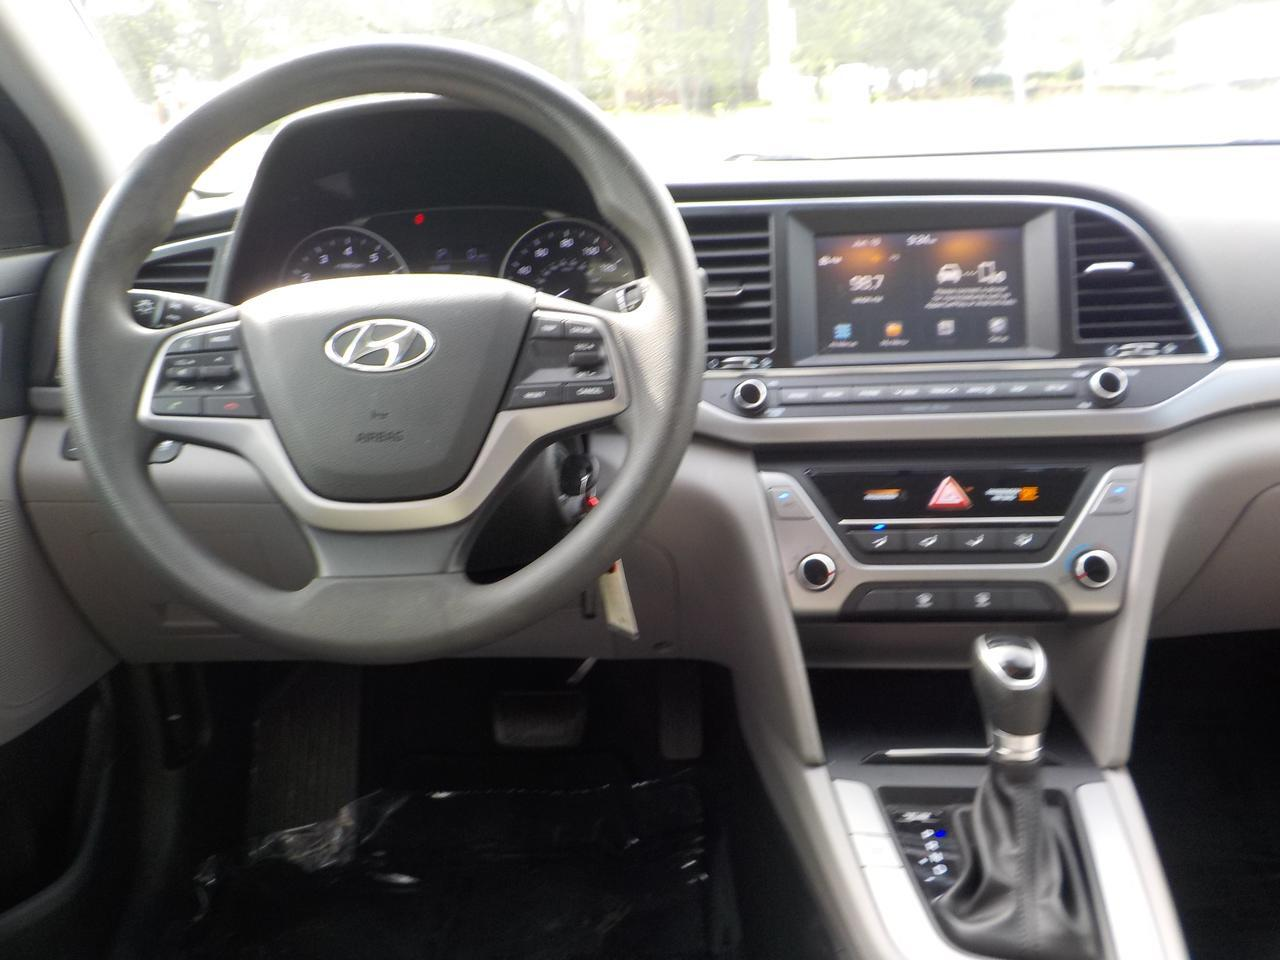 2017 HYUNDAI ELANTRA SE, WARRANTY, BLUETOOTH, AUX/USB PORT, BACKUP CAM, 1 OWNER, LOW MILES, CLEAN CARFAX! Norfolk VA